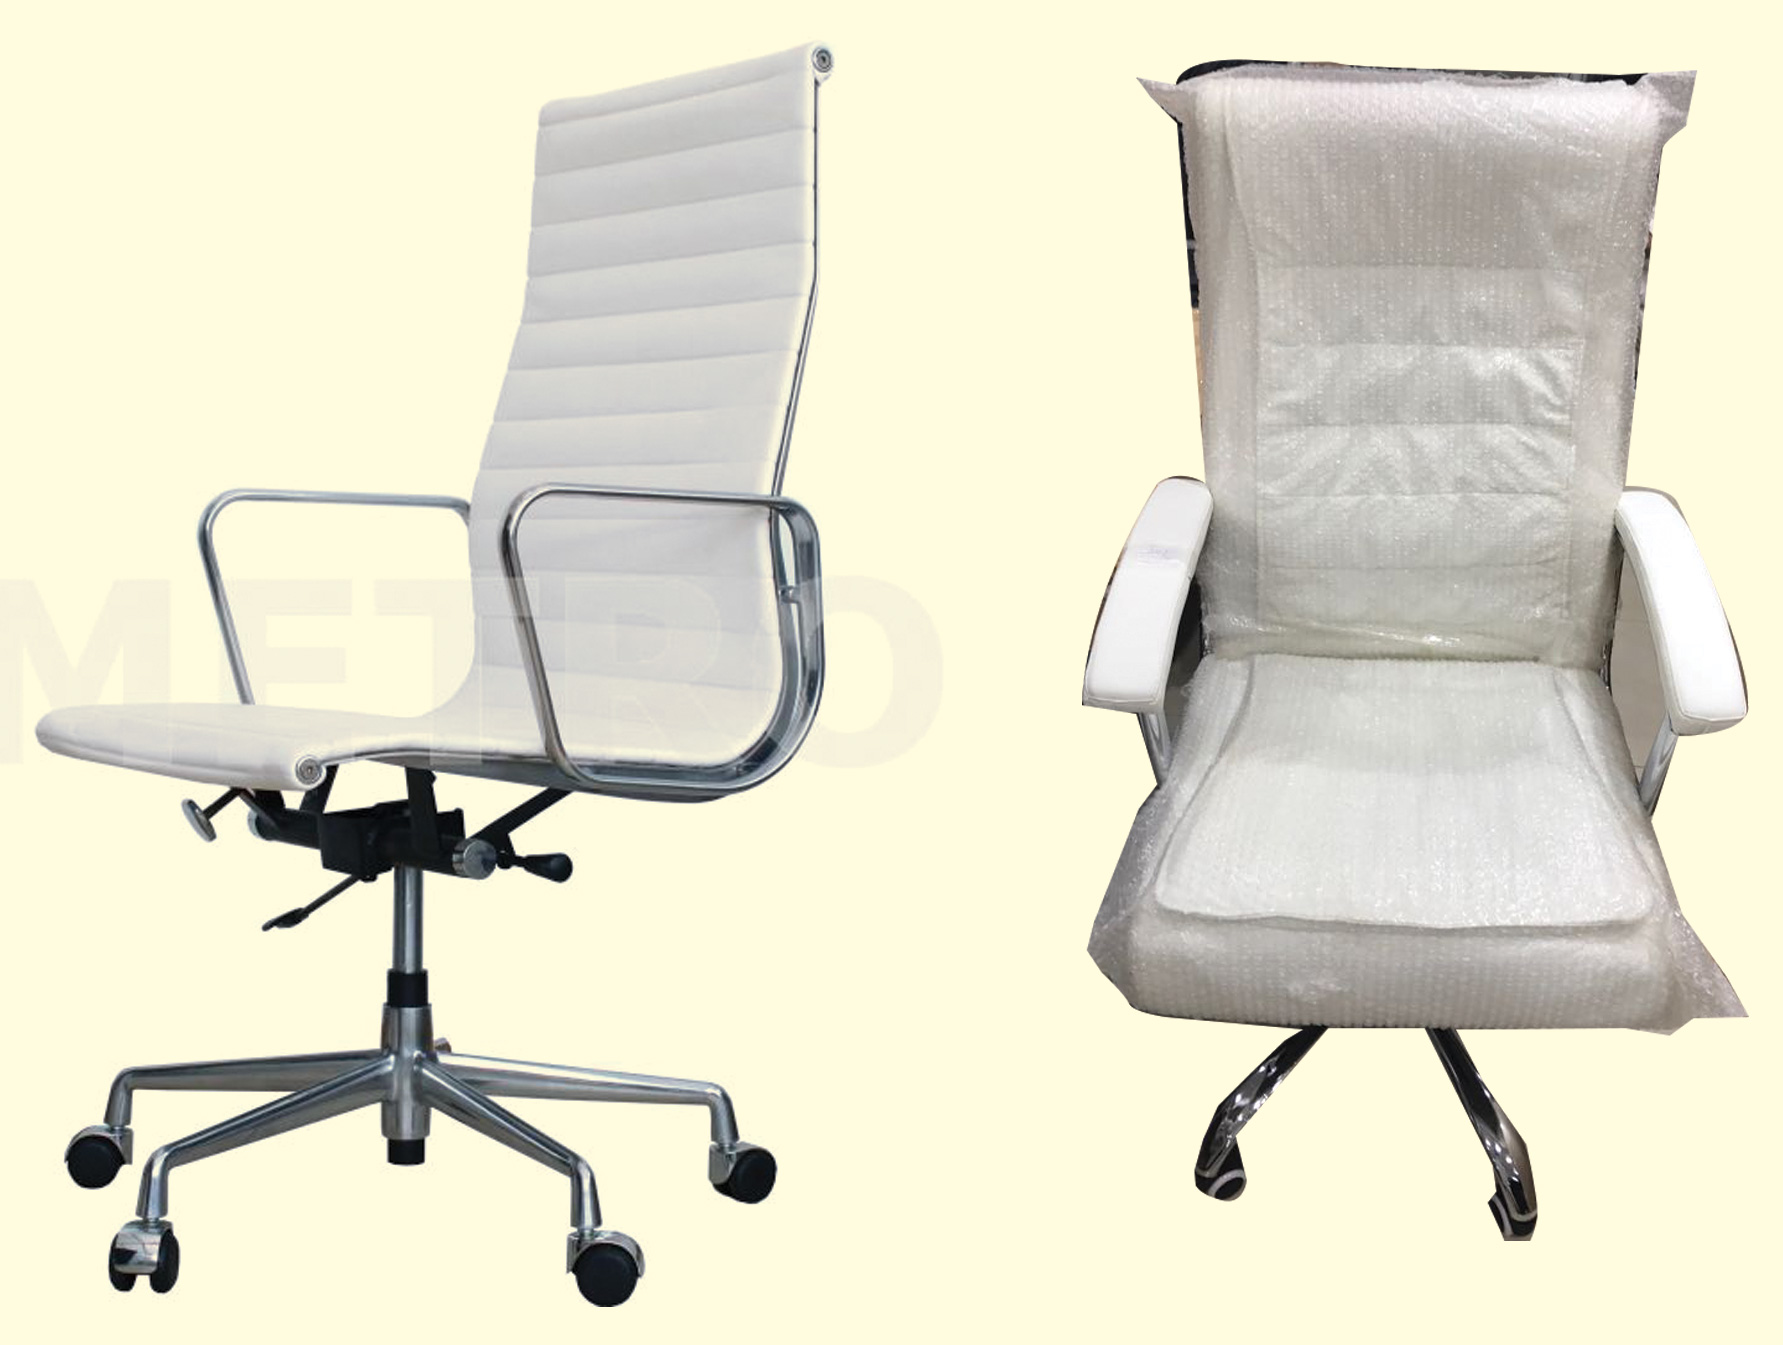 Surprising Online Shopping Saudi Arabia Buy Office And Stationary Alphanode Cool Chair Designs And Ideas Alphanodeonline